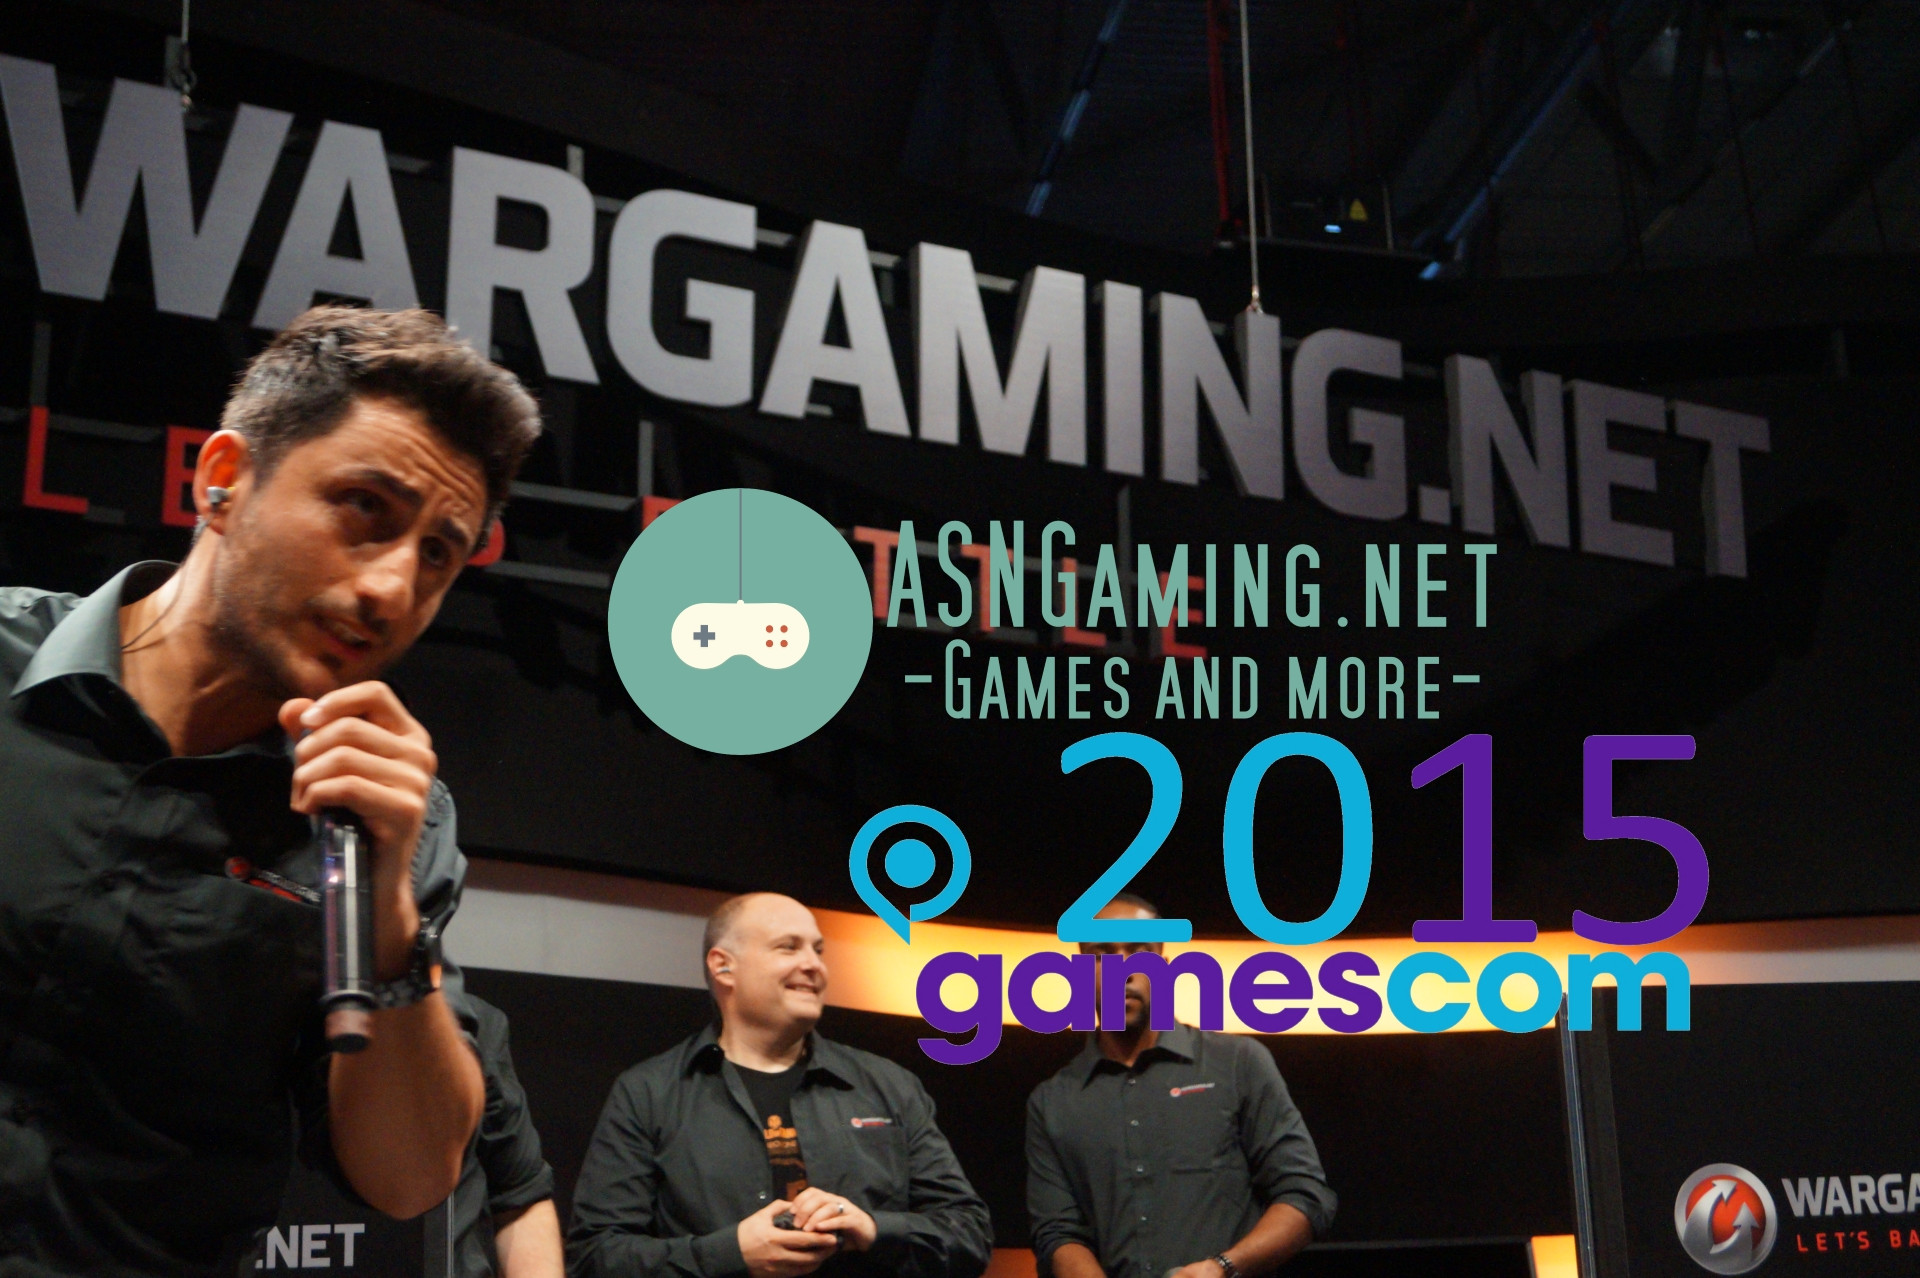 'Visitorday 1 was crazy!' - Gamescom 2015